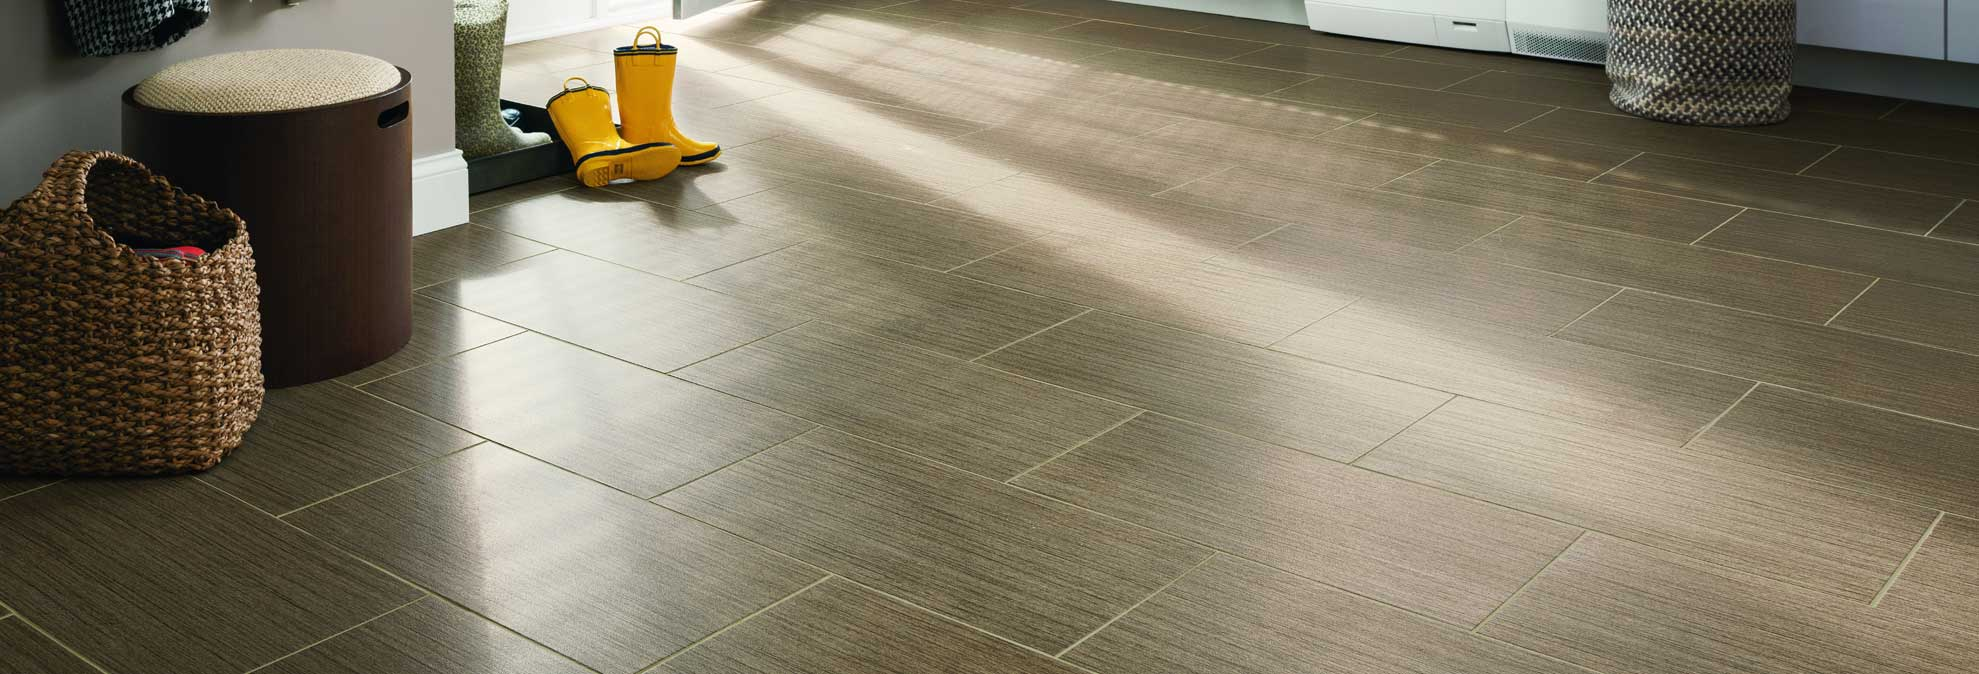 best laminate flooring best flooring buying guide - consumer reports CHVQZDY